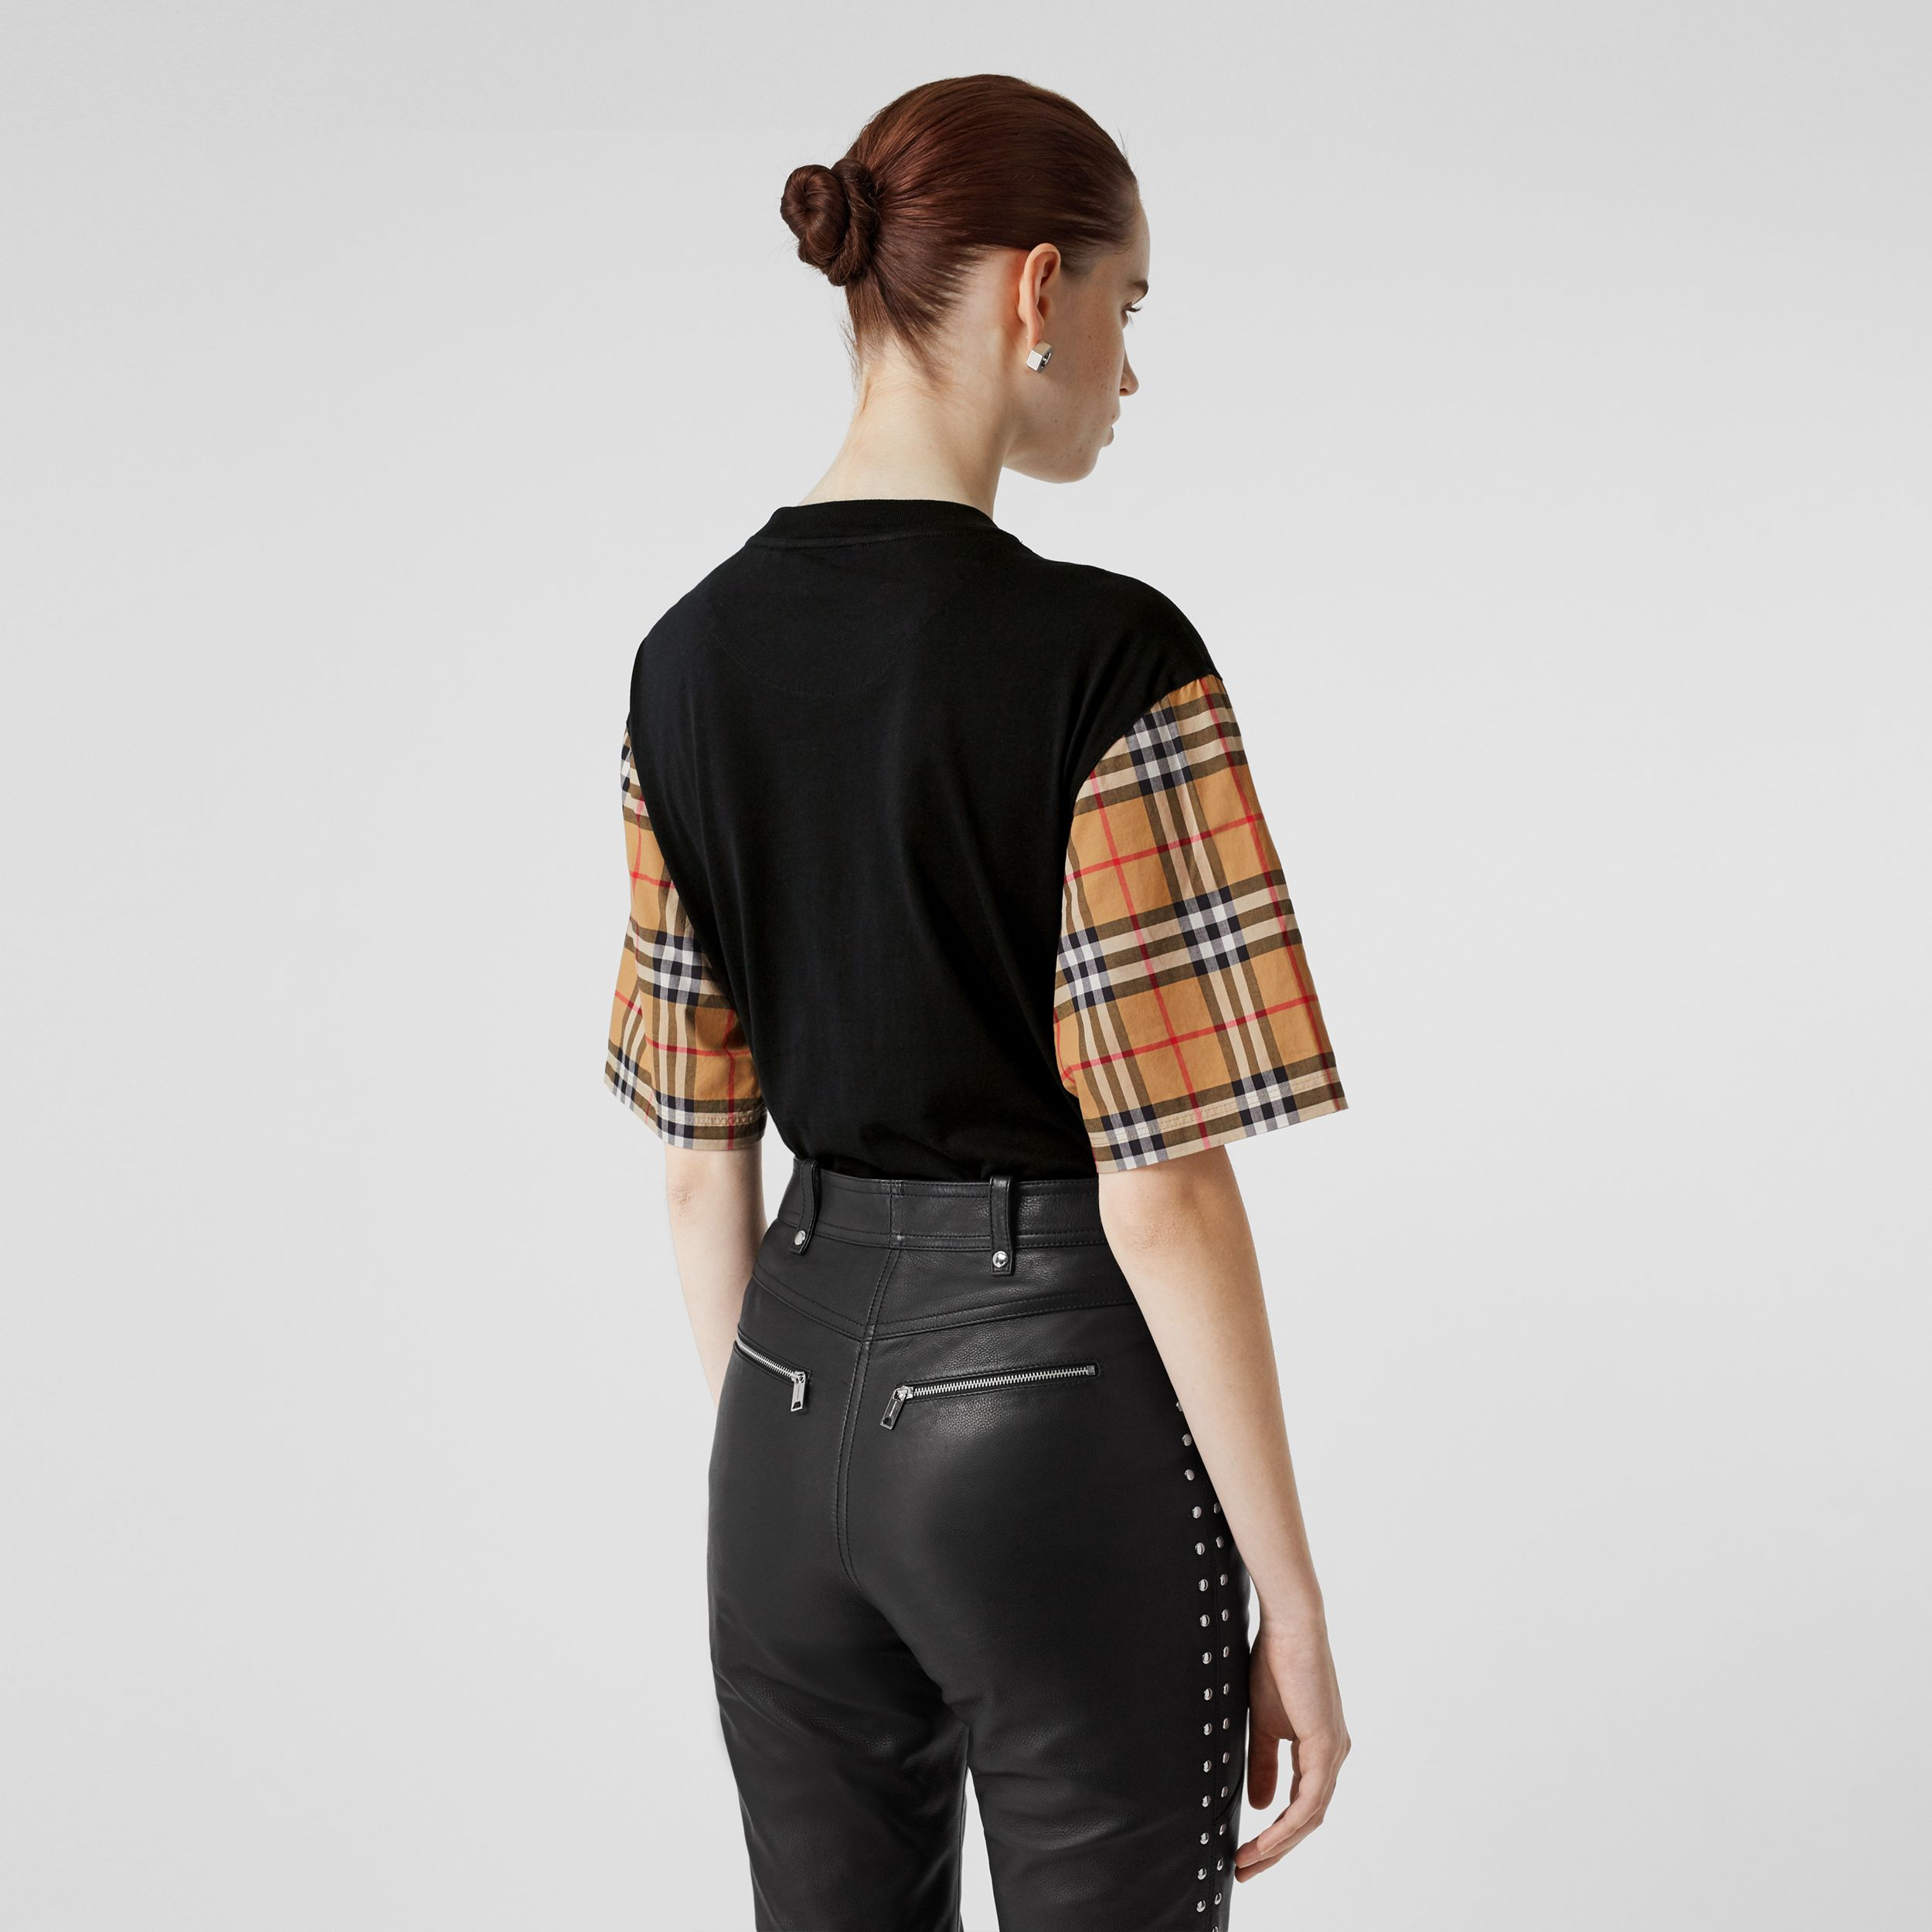 Vintage Check Detail Cotton T-shirt in Black - Women | Burberry Australia - 3